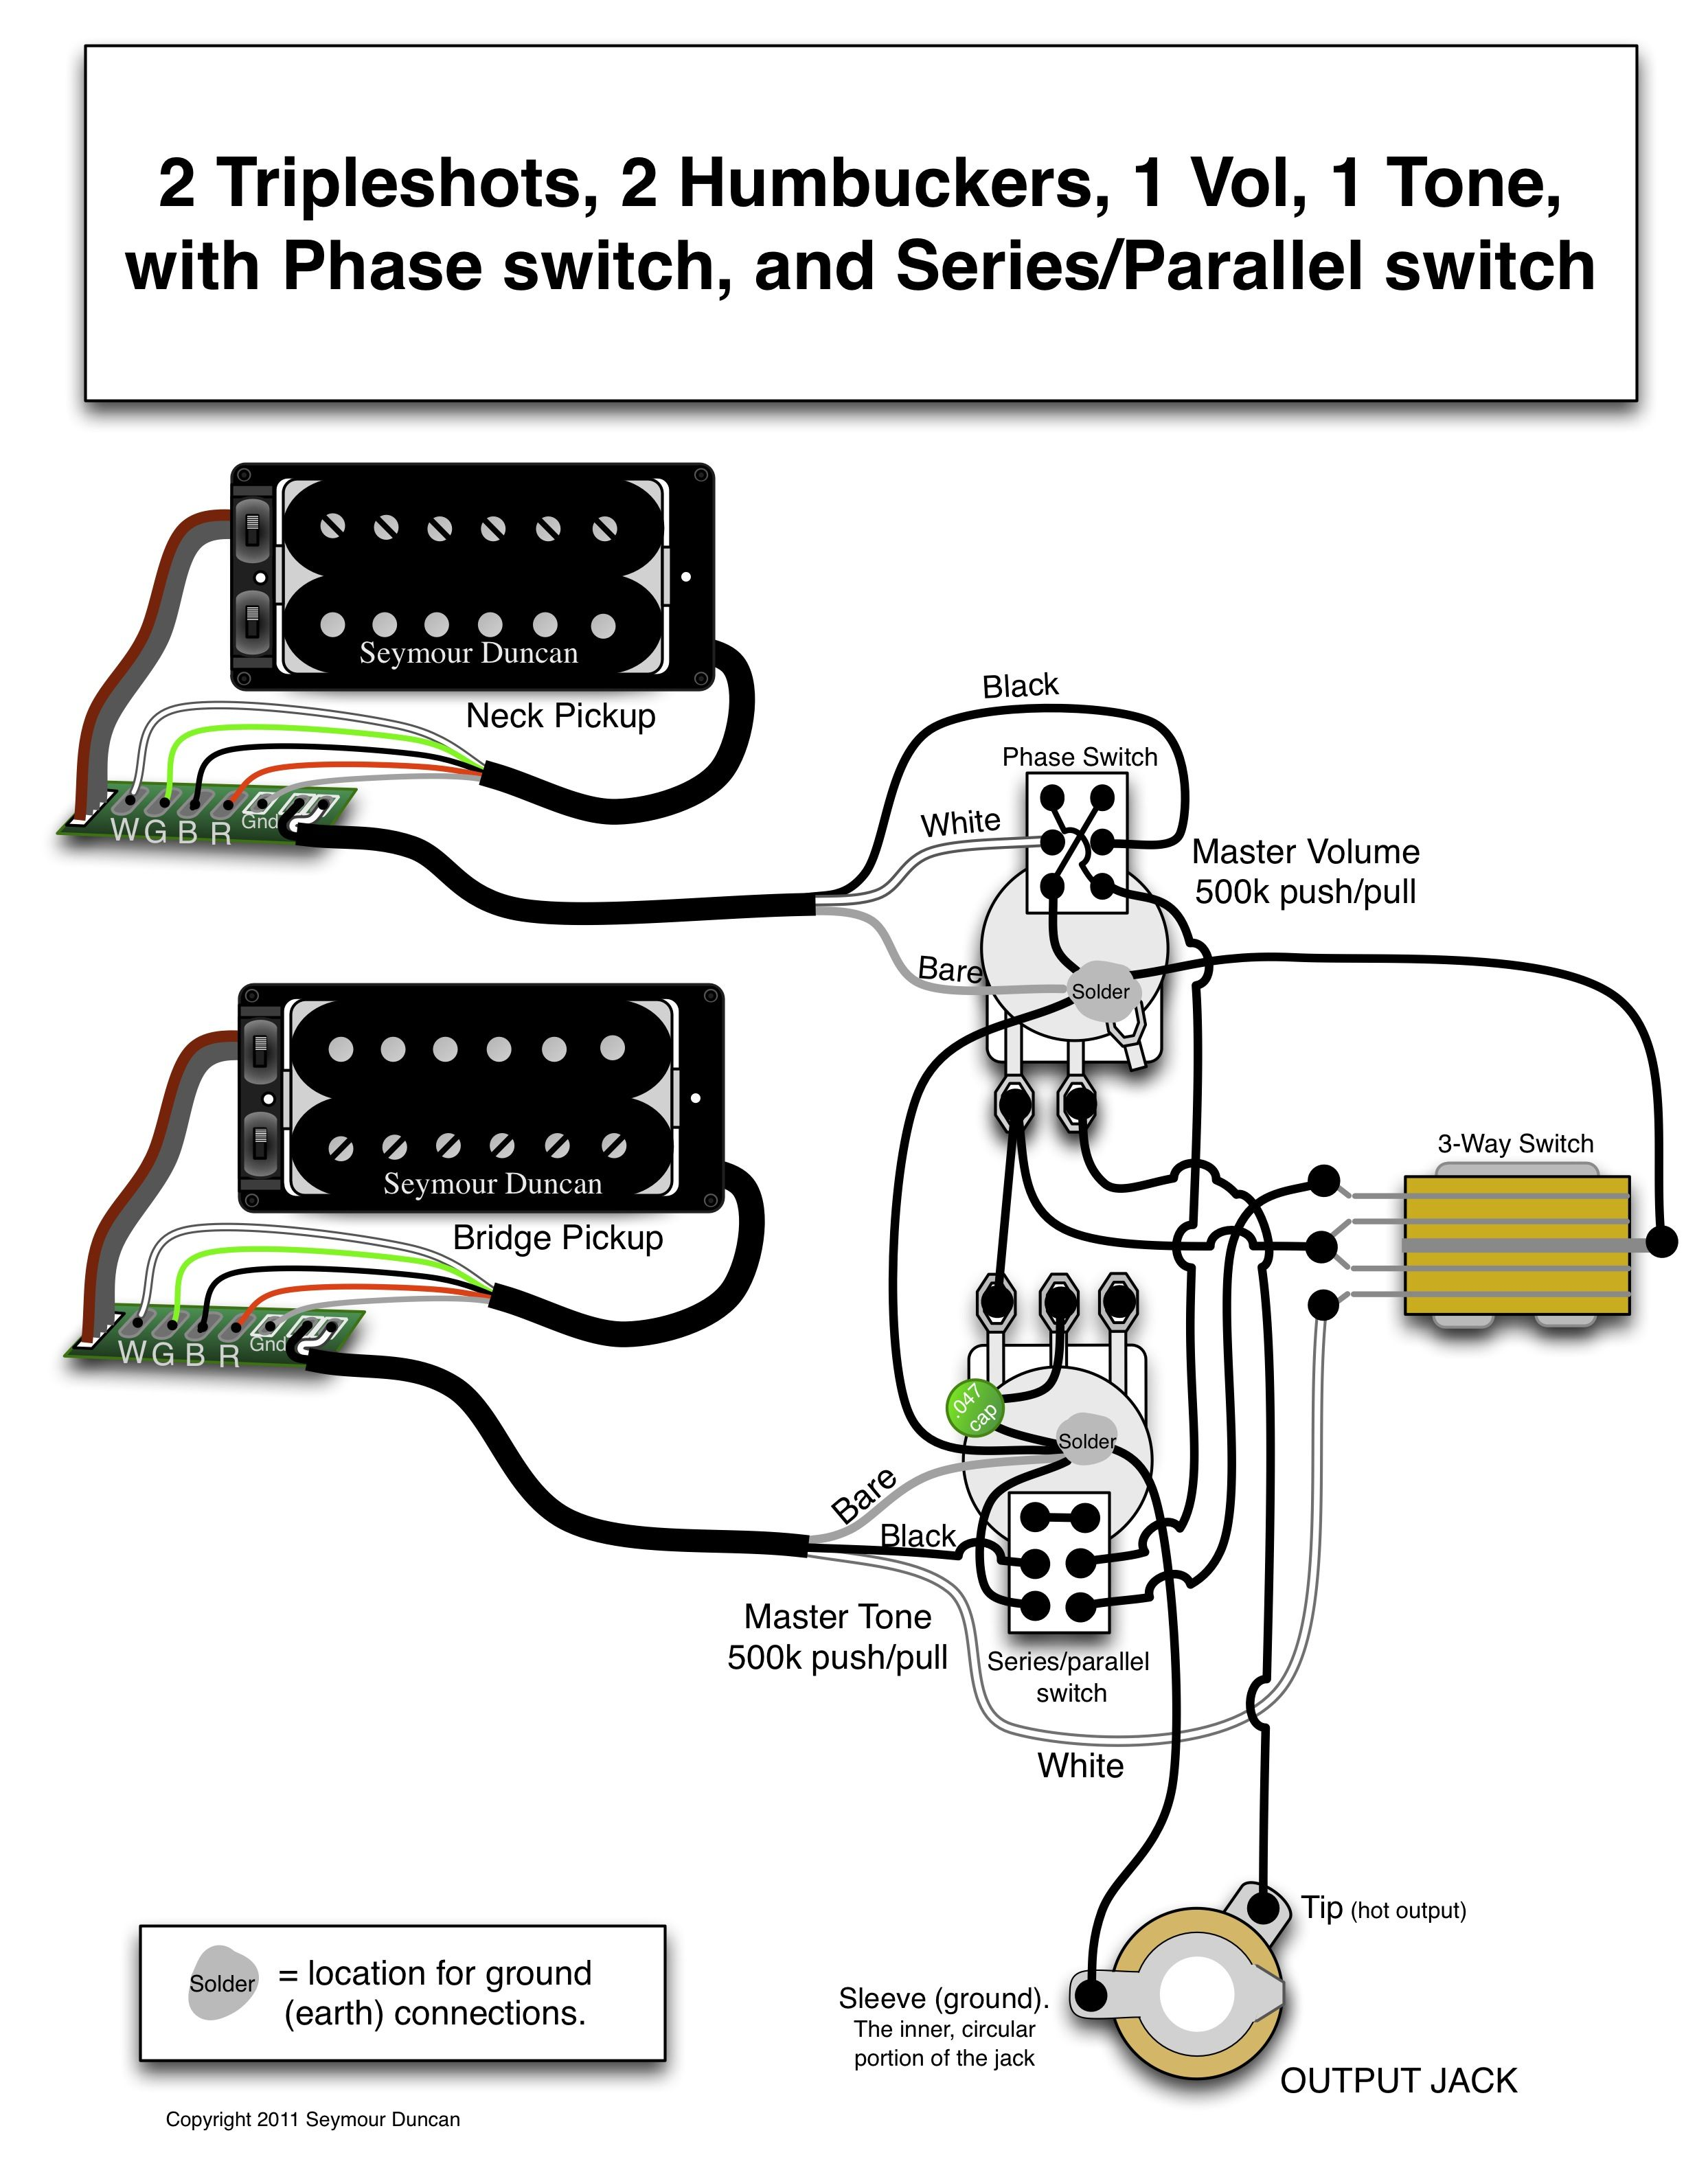 11e7a4ce932088841833425d14ebd2ea seymour duncan wiring diagram 2 triple shots, 2 humbuckers, 1  at gsmportal.co